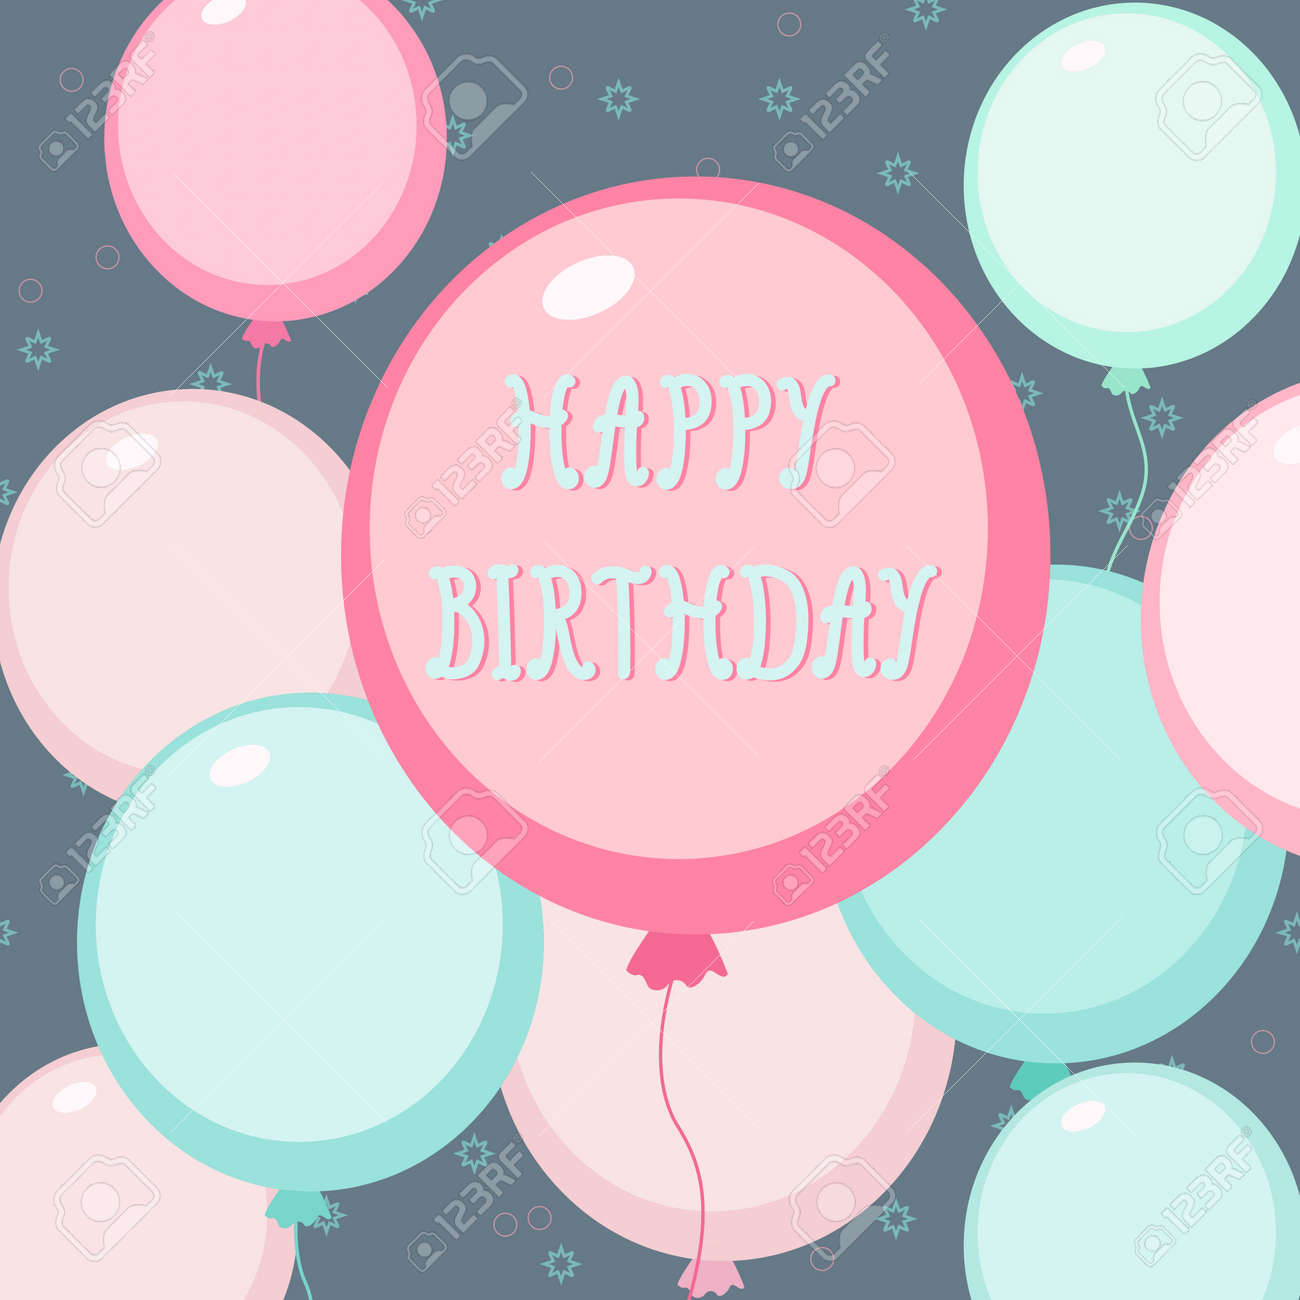 colorful birthday card template with pink and blue balloons